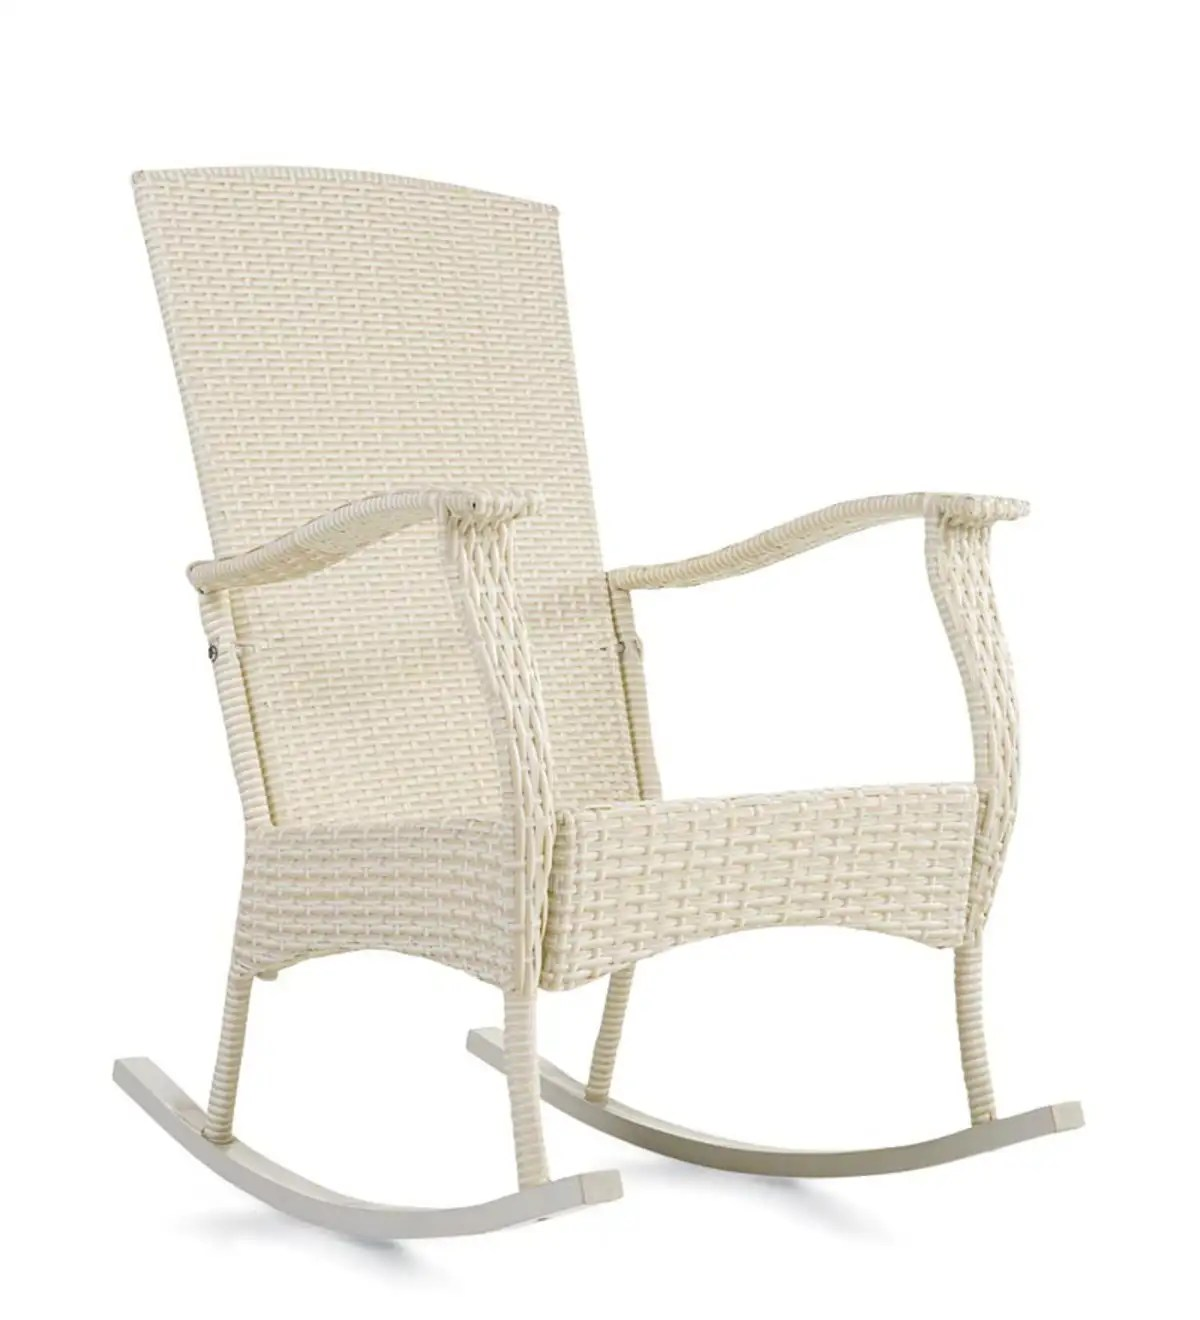 Wicker Rocking Chair Outdoor Or Indoor Wicker Rocking Chair With Steel Frame Plowhearth